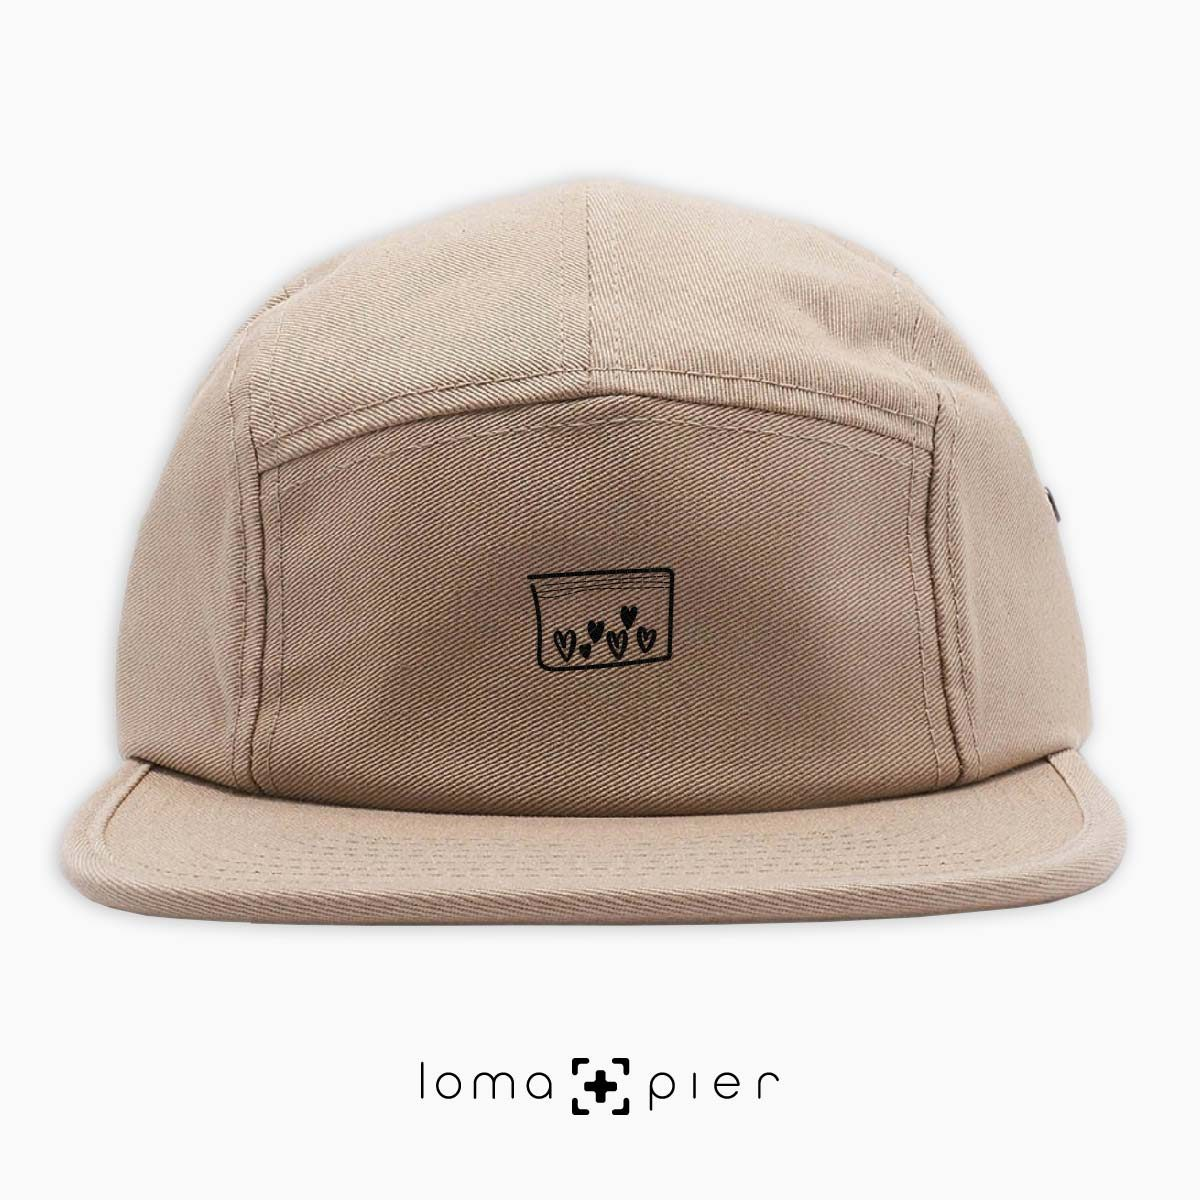 LOVE DRUG icon embroidered on a khaki cotton 5-panel hat with black thread by loma+pier hat store